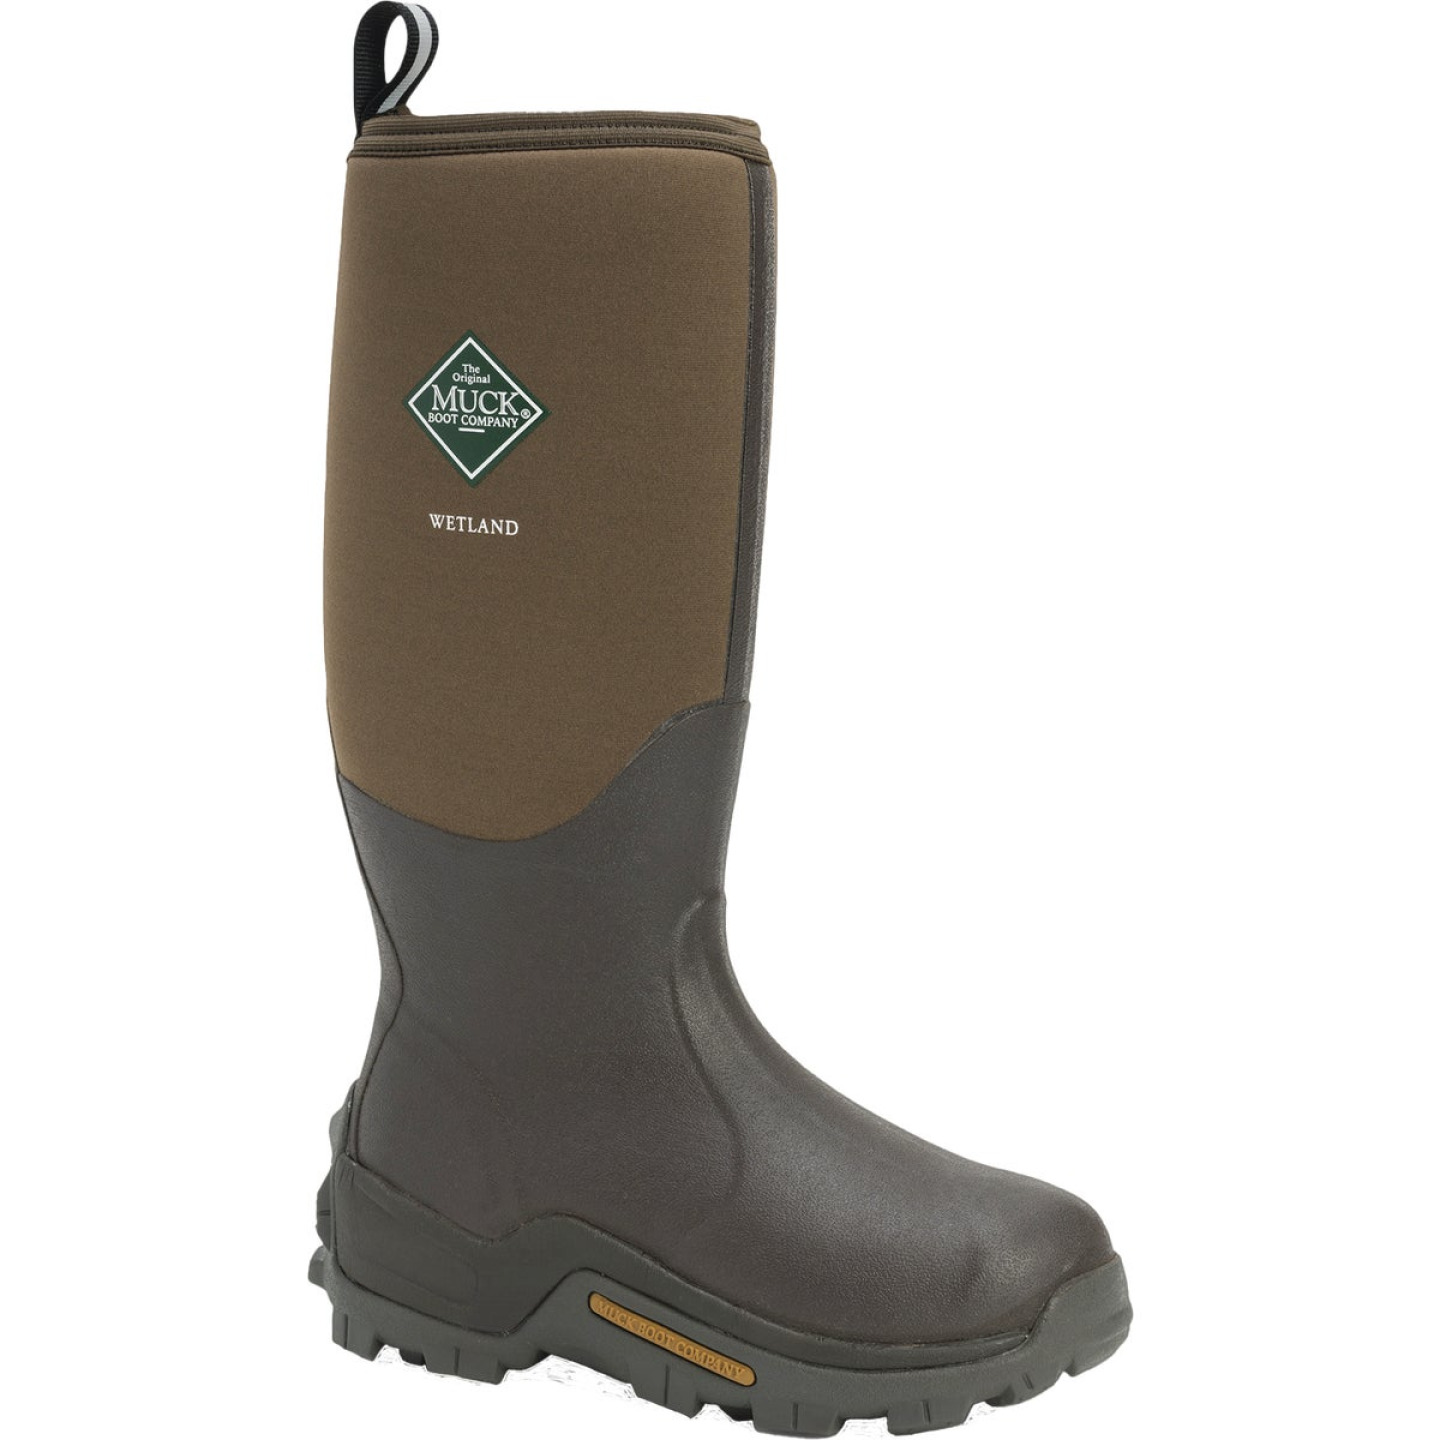 Muck Boot Co Wetland Men's Size 12 Waterproof Hunting Boot Image 1